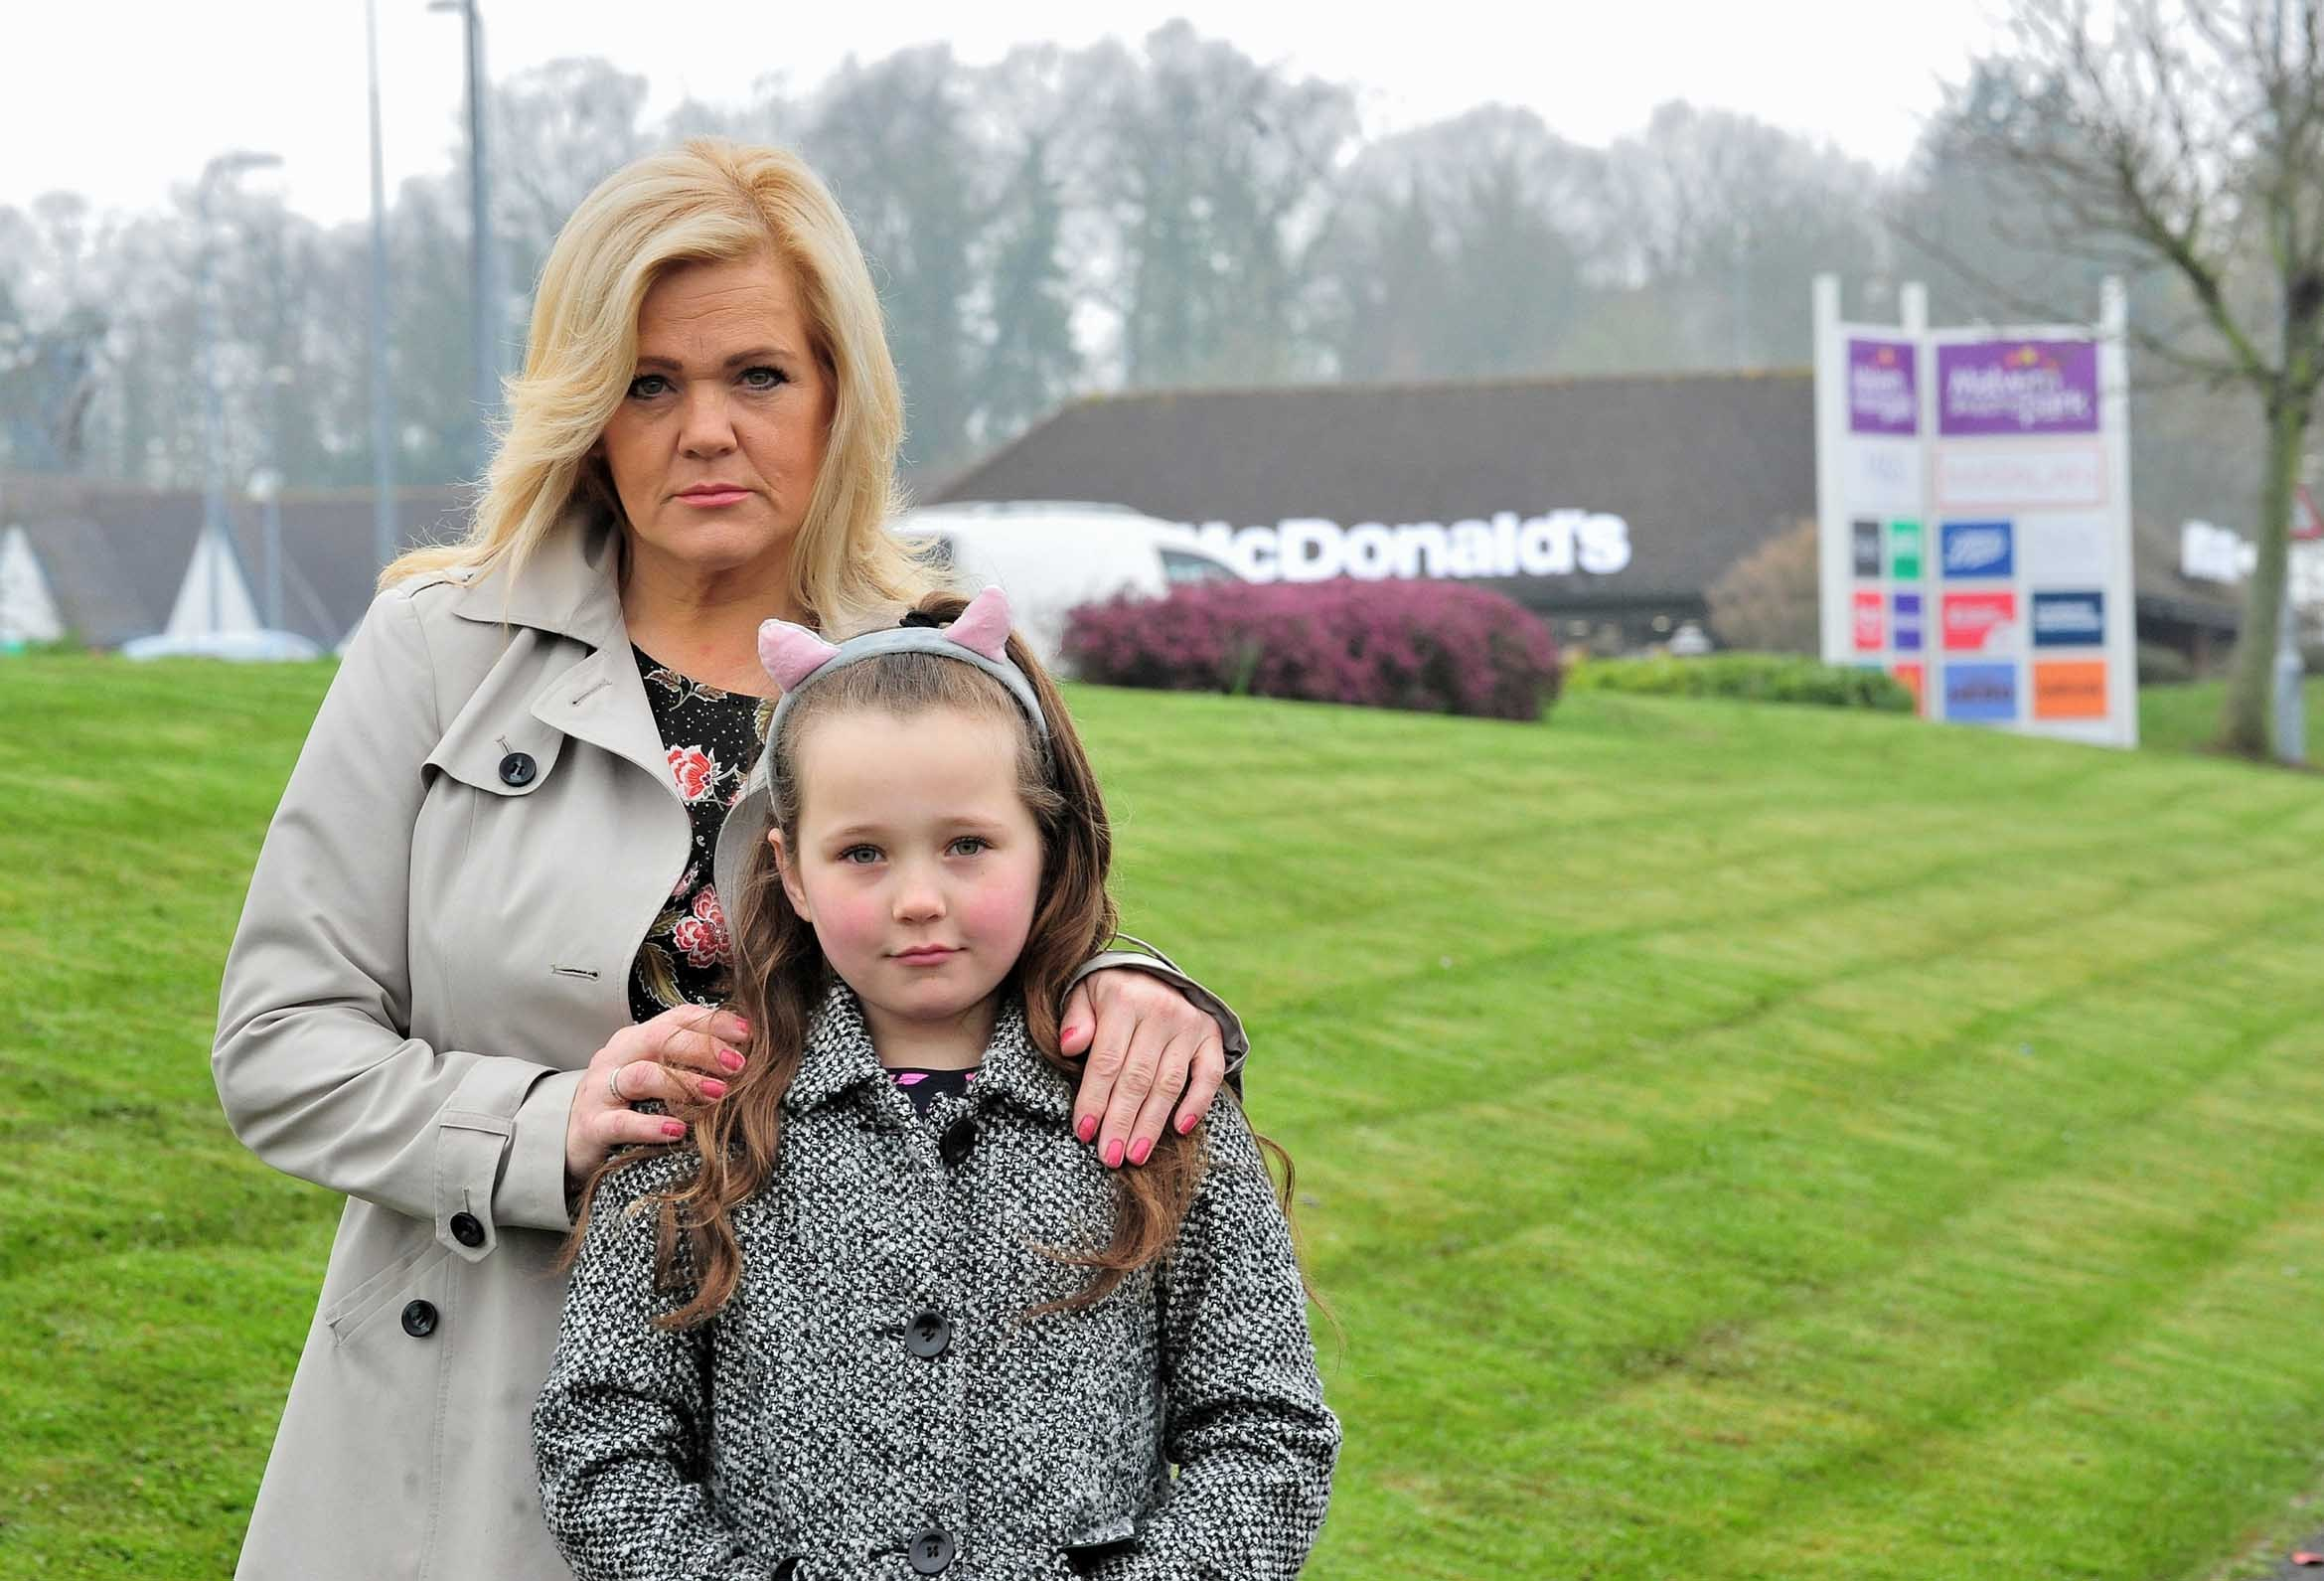 SHOCKED: Caroline Beard, who is calling for security at McDonald's, with her daughter, Isabelle, at Malvern Shopping Park.